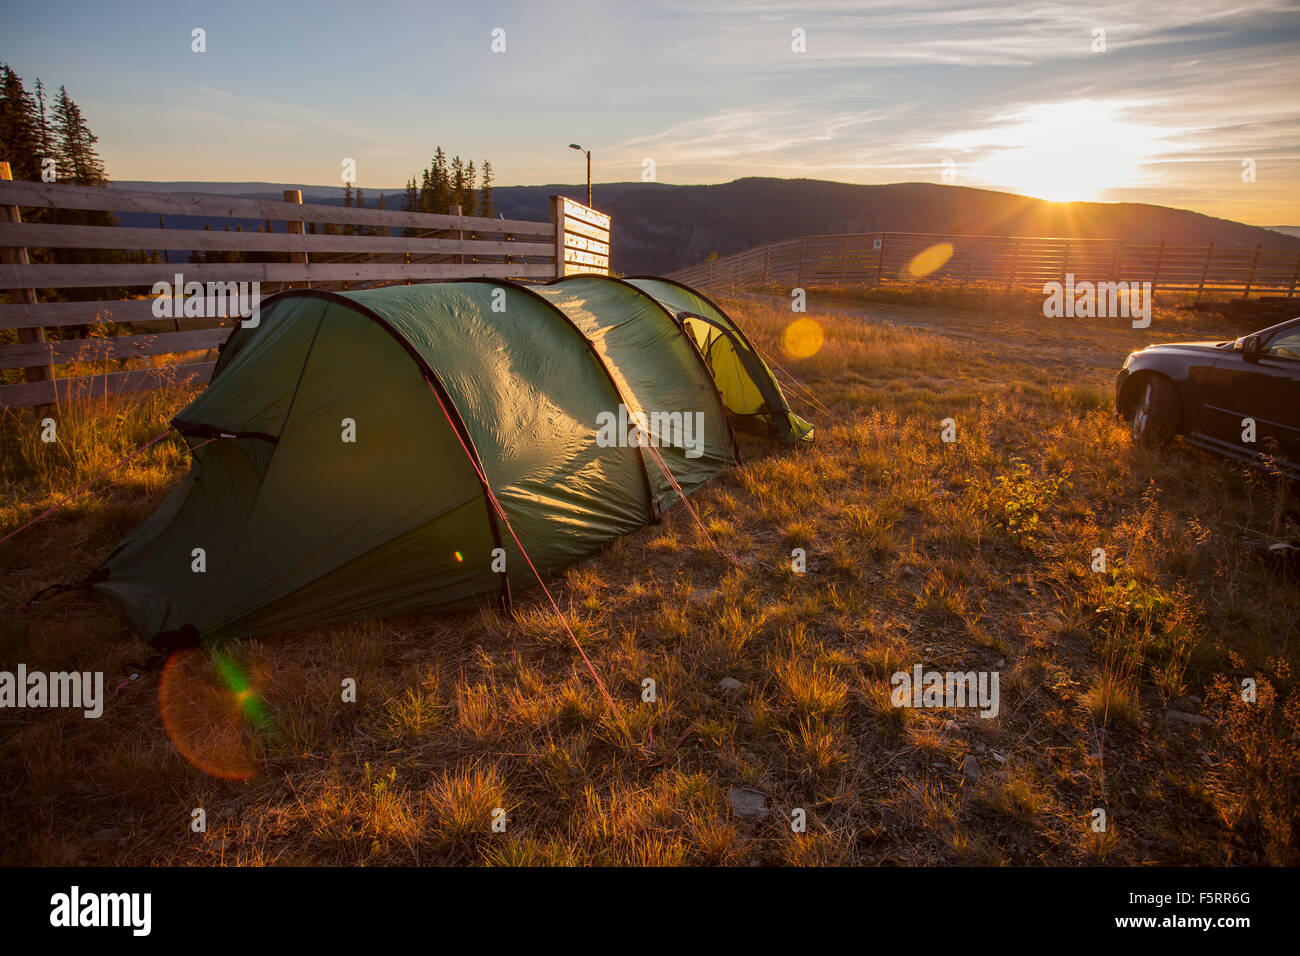 Norway, Hafjell, Tent at sunset - Stock Image